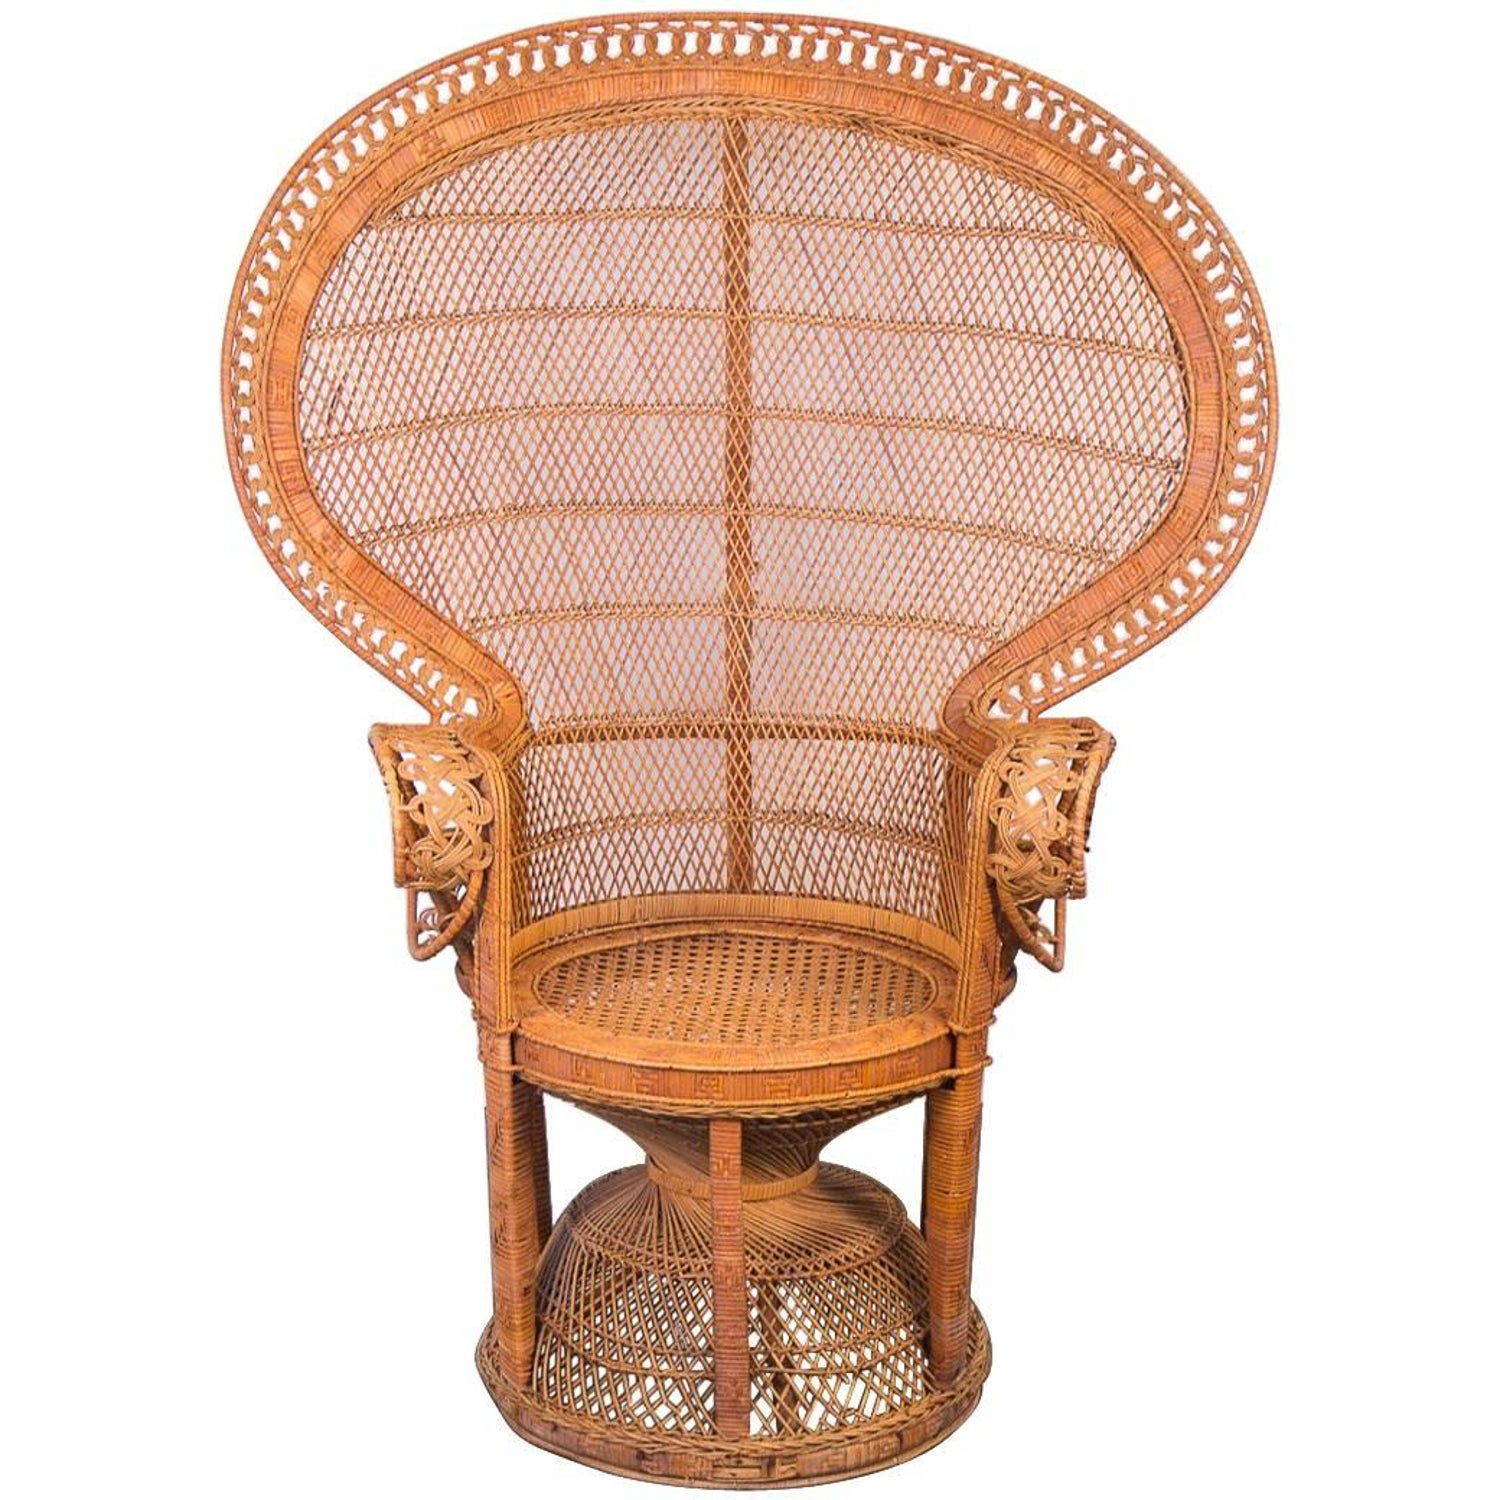 Iconic Emmanuelle Chair Midcentury Rattan Peacock Chair For Sale